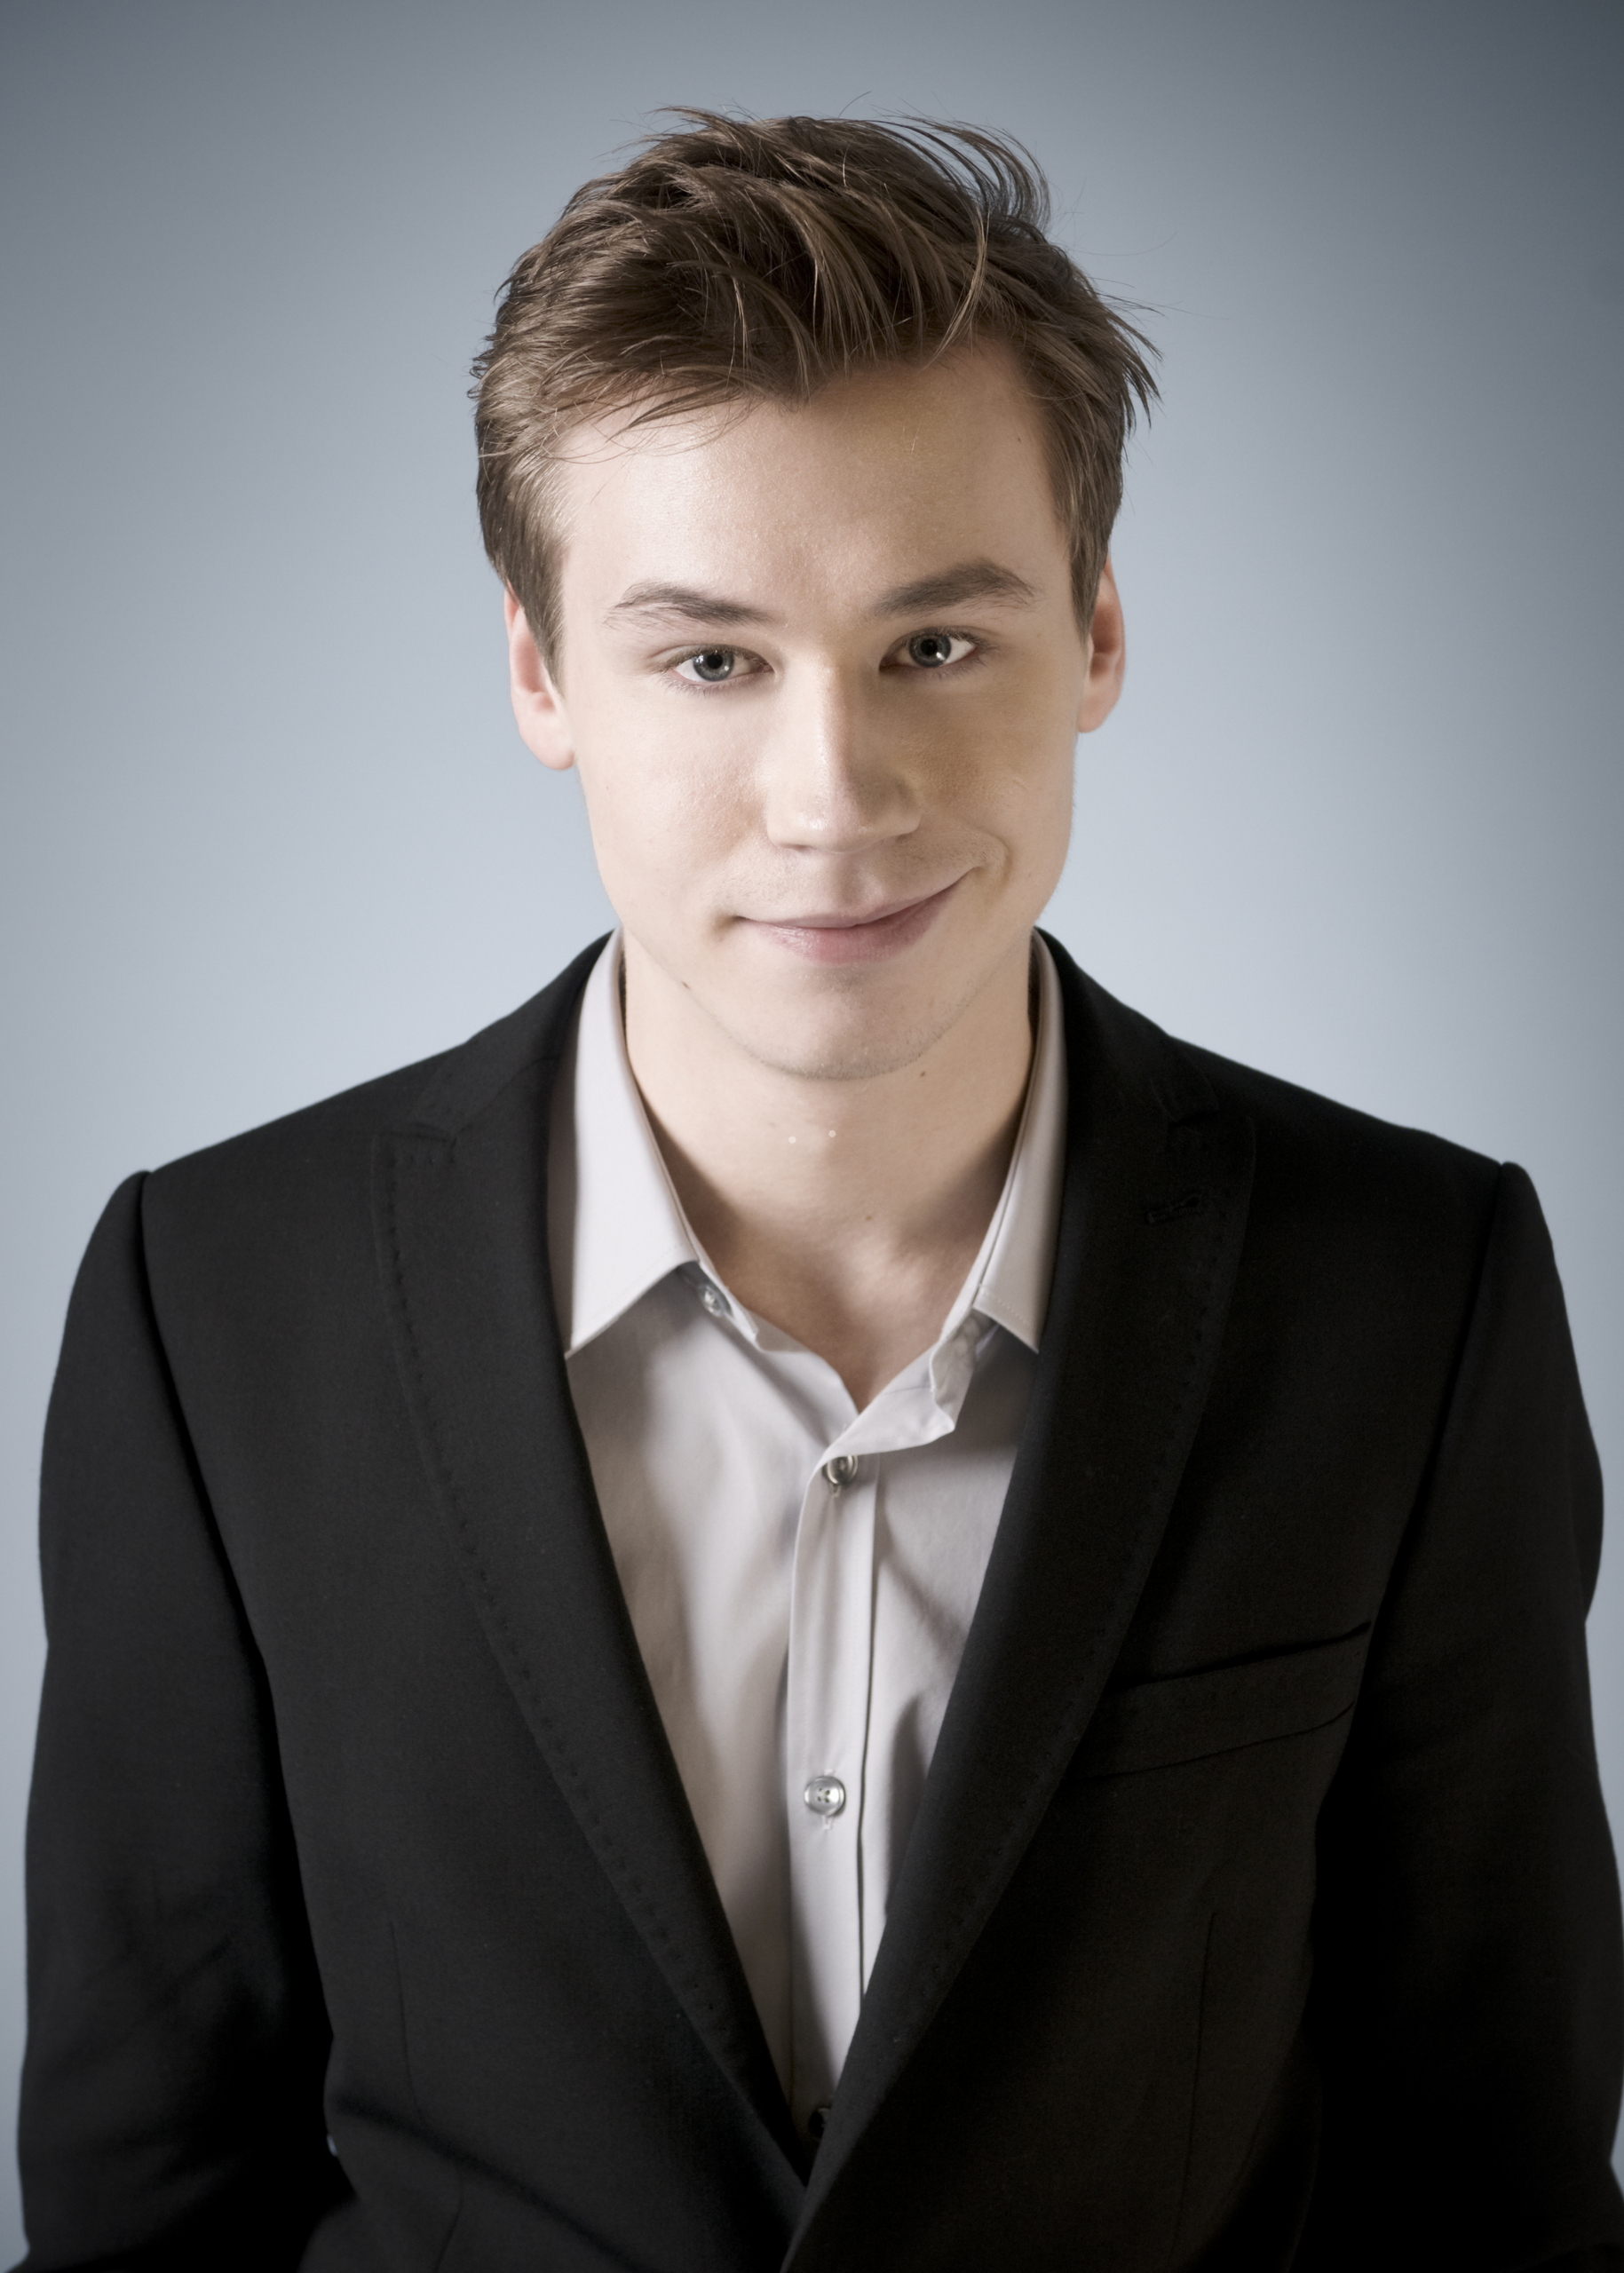 David Kross earned a  million dollar salary, leaving the net worth at 1 million in 2017